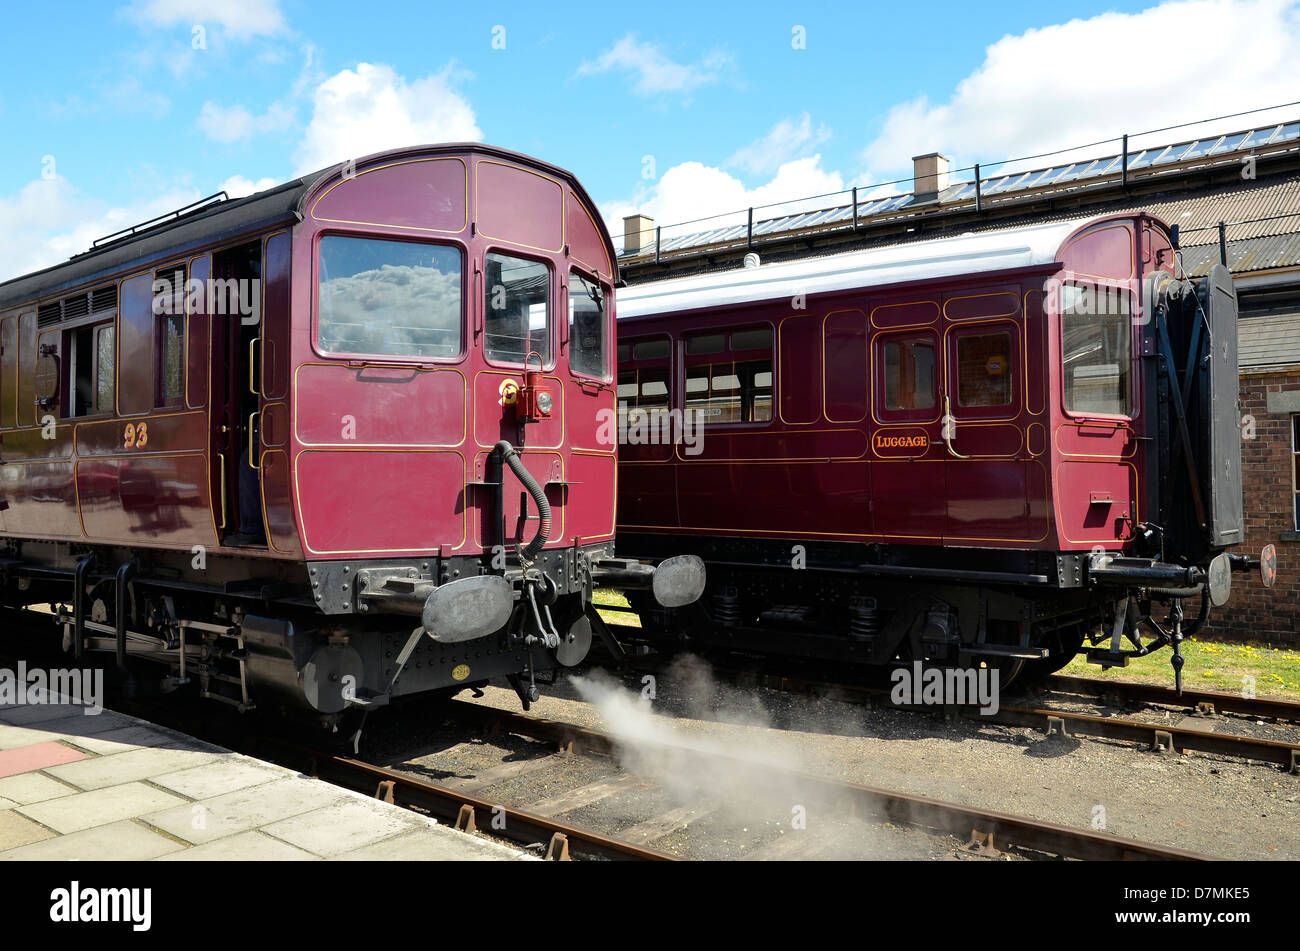 Rebuilt GWR steam railmotor and autotrailer, Didcot Railway Centre base. The precursor of modern multiple unit trains. - Stock Image